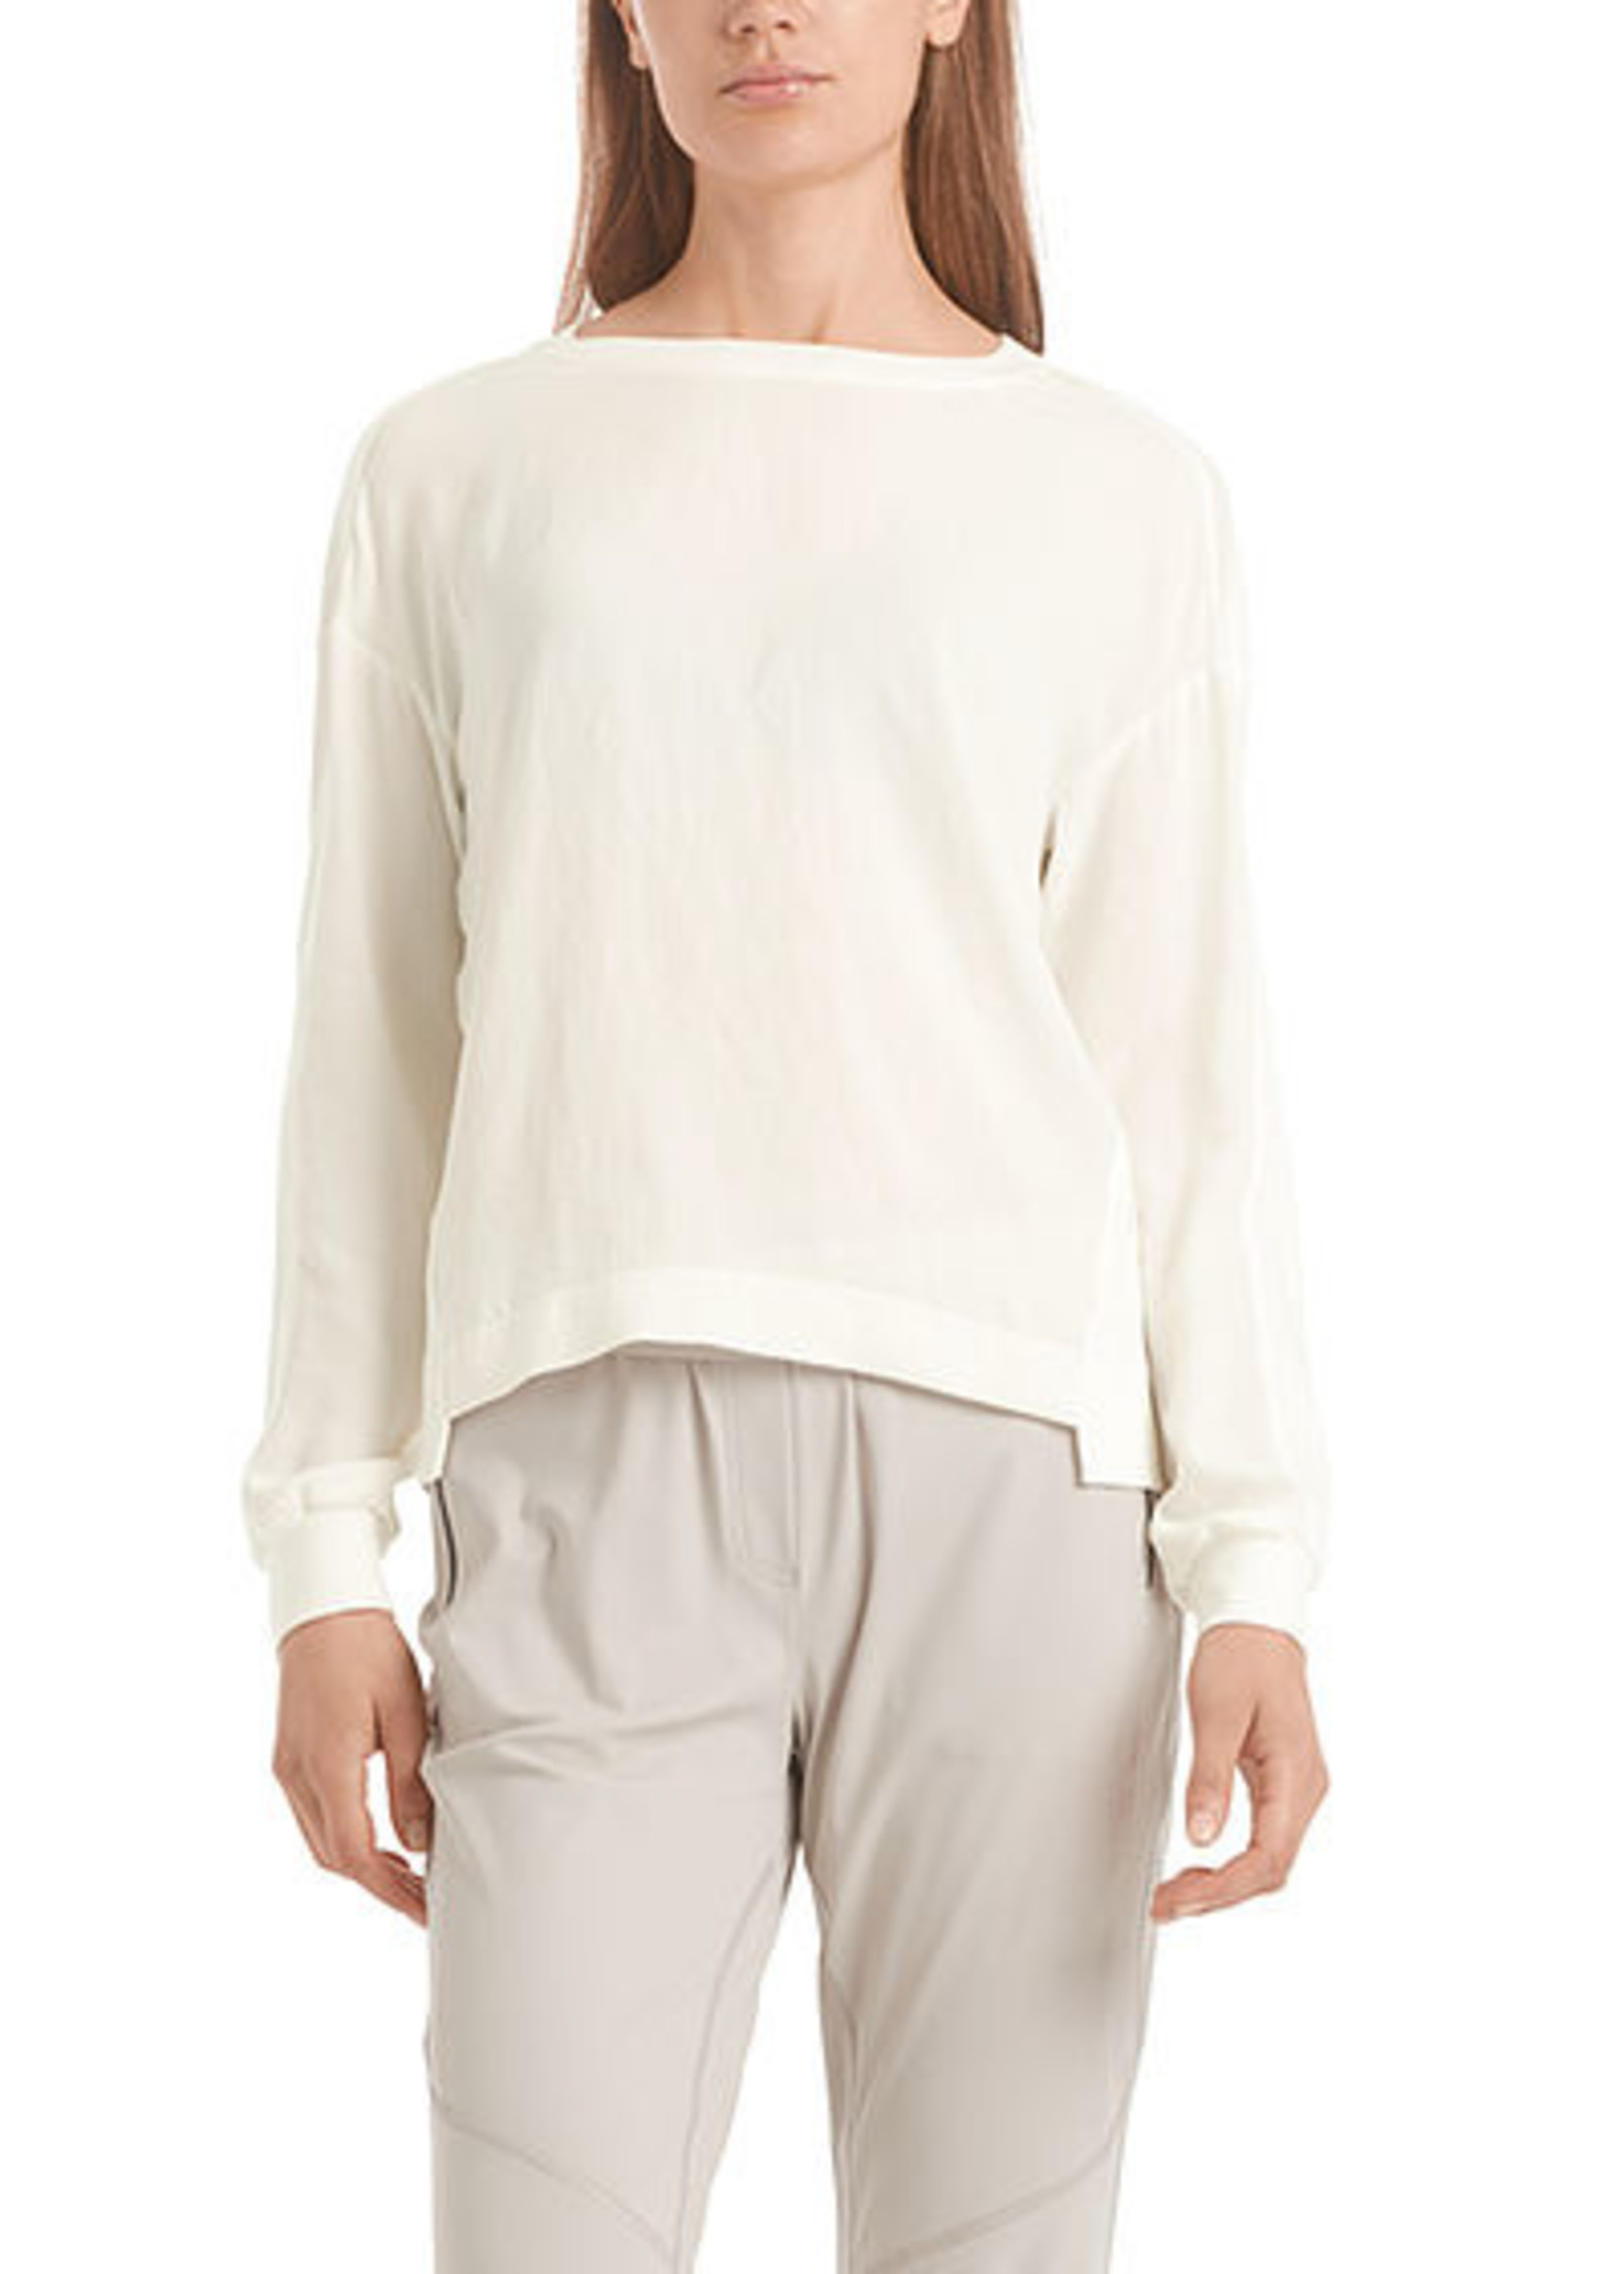 Marccain Sports Blouse RS 55.09 J67 white